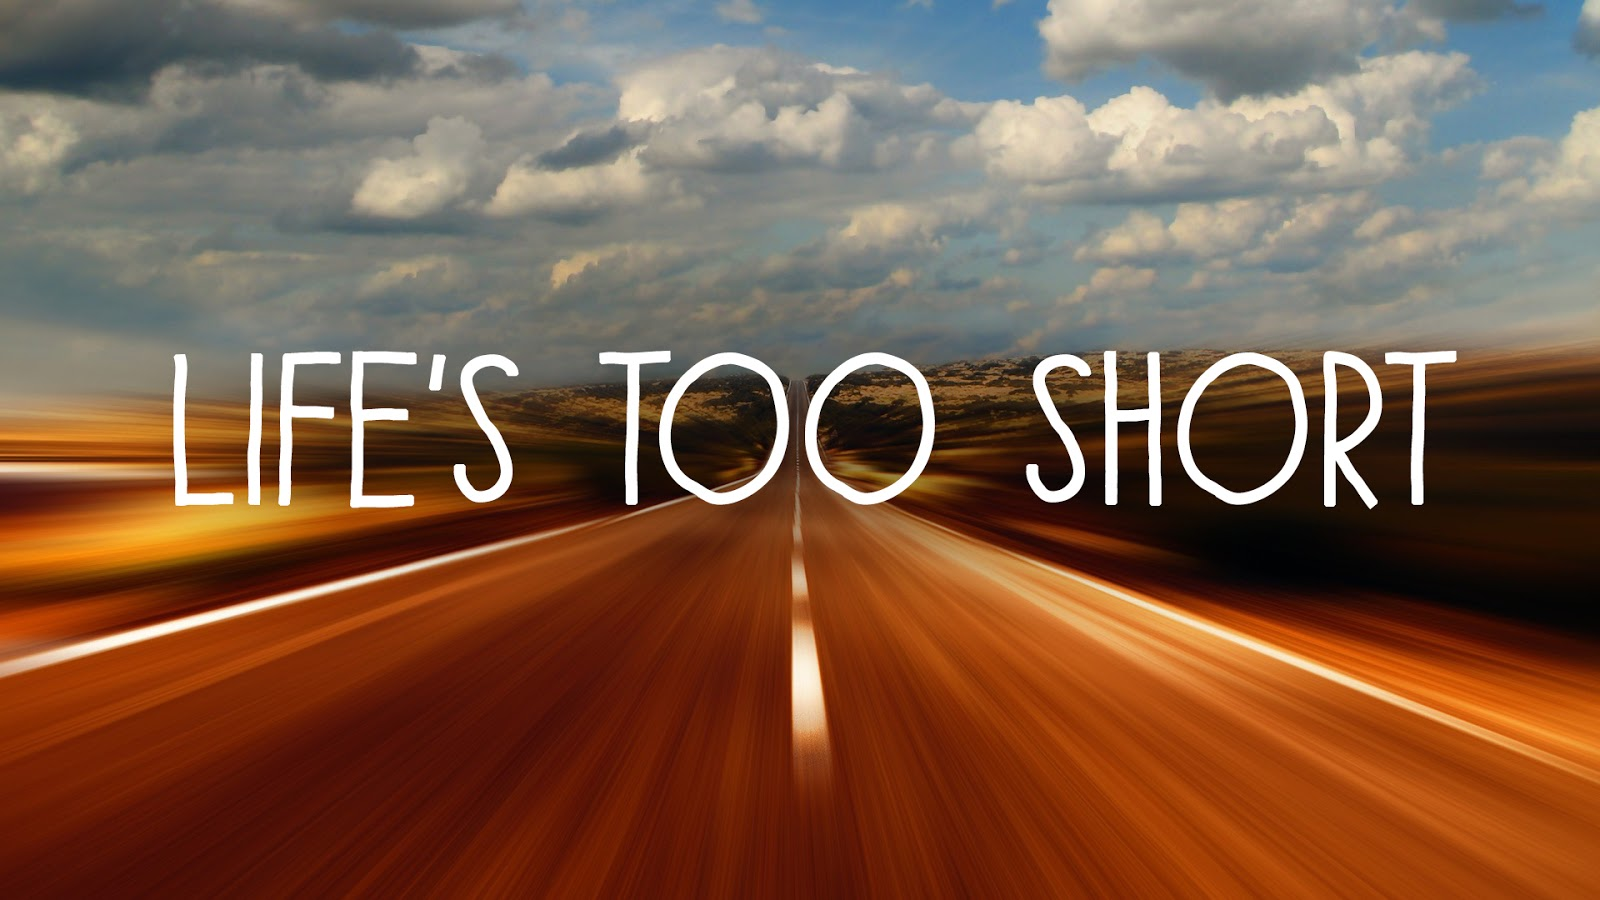 Lifes Too Short Quotes Top 10 Best Life's Too Short Quotes  Famous Quotes